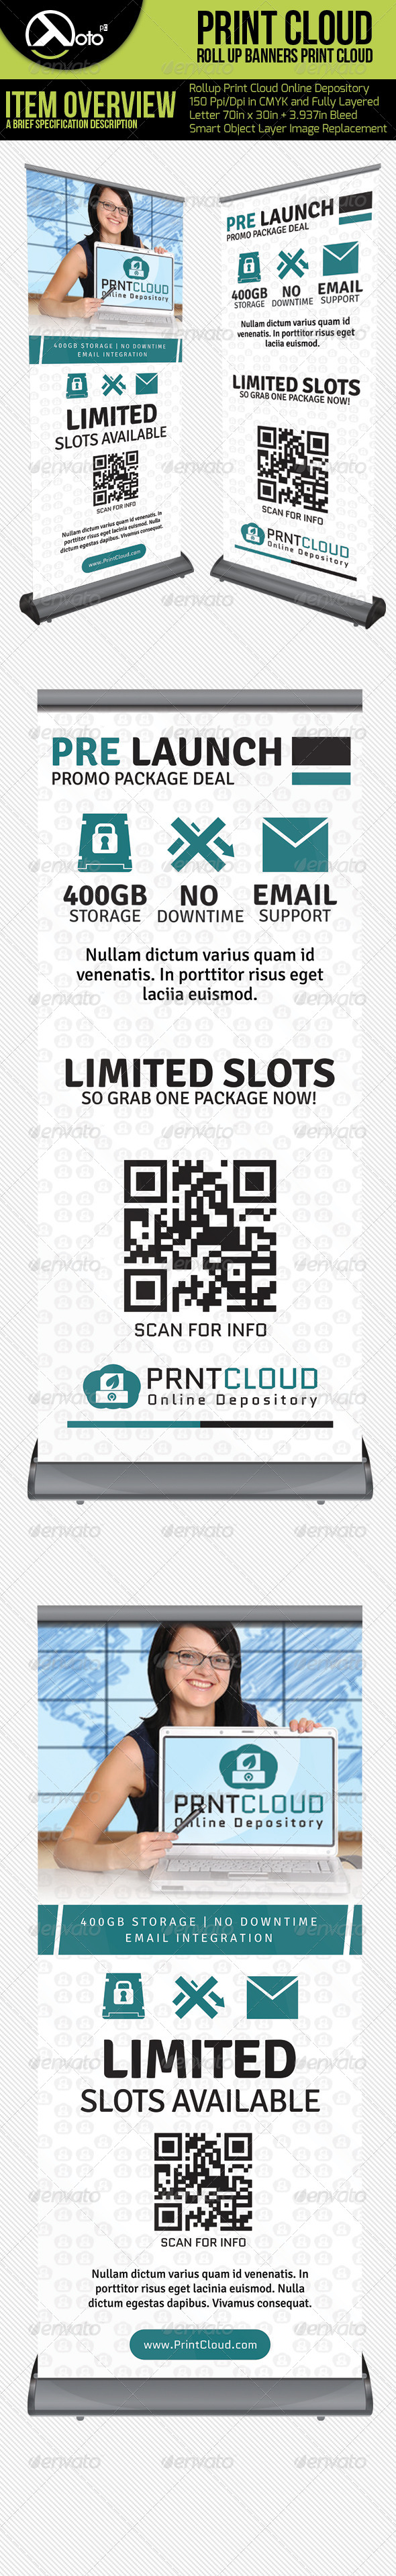 Print Cloud Online Depository Roll Up Banners - Signage Print Templates